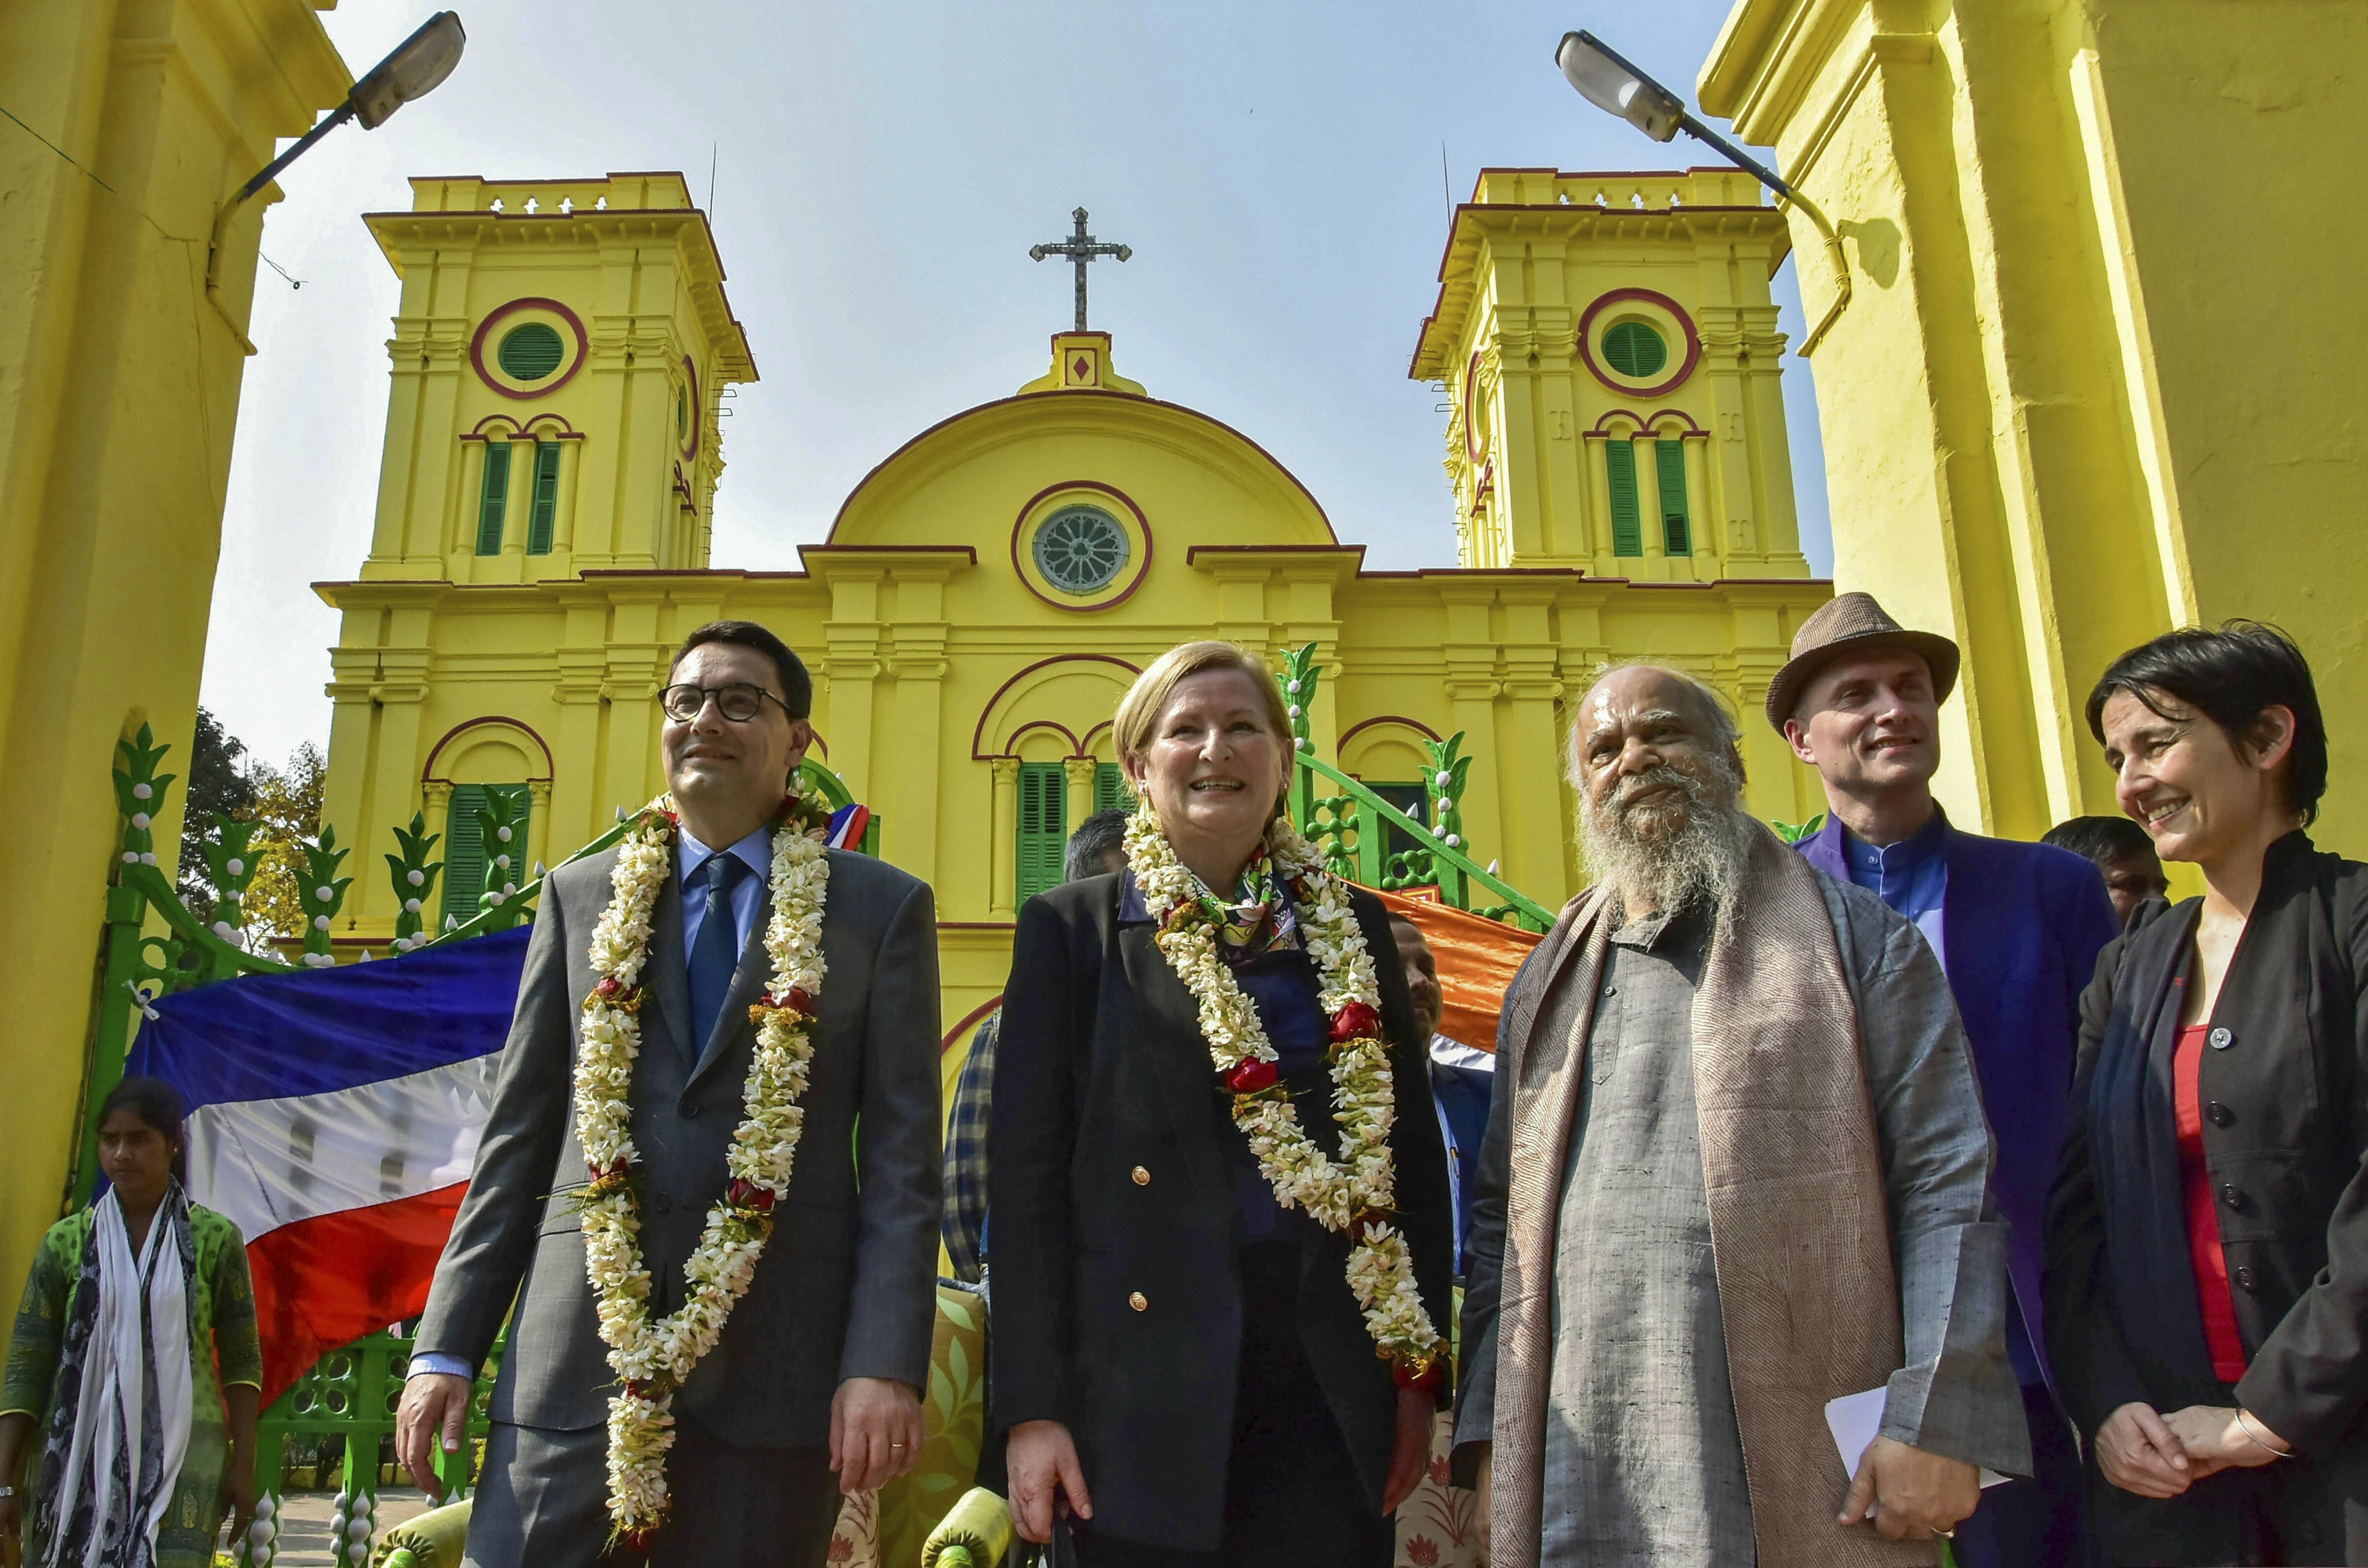 Ambassador of France to India Alexandre Ziegler and Chairman of West Bengal Heritage Commission painter Shuvaprasanna during the unveiling of plaques of heritage sites at Scared Heart Church at Chandernagore in Hooghly district - PTI